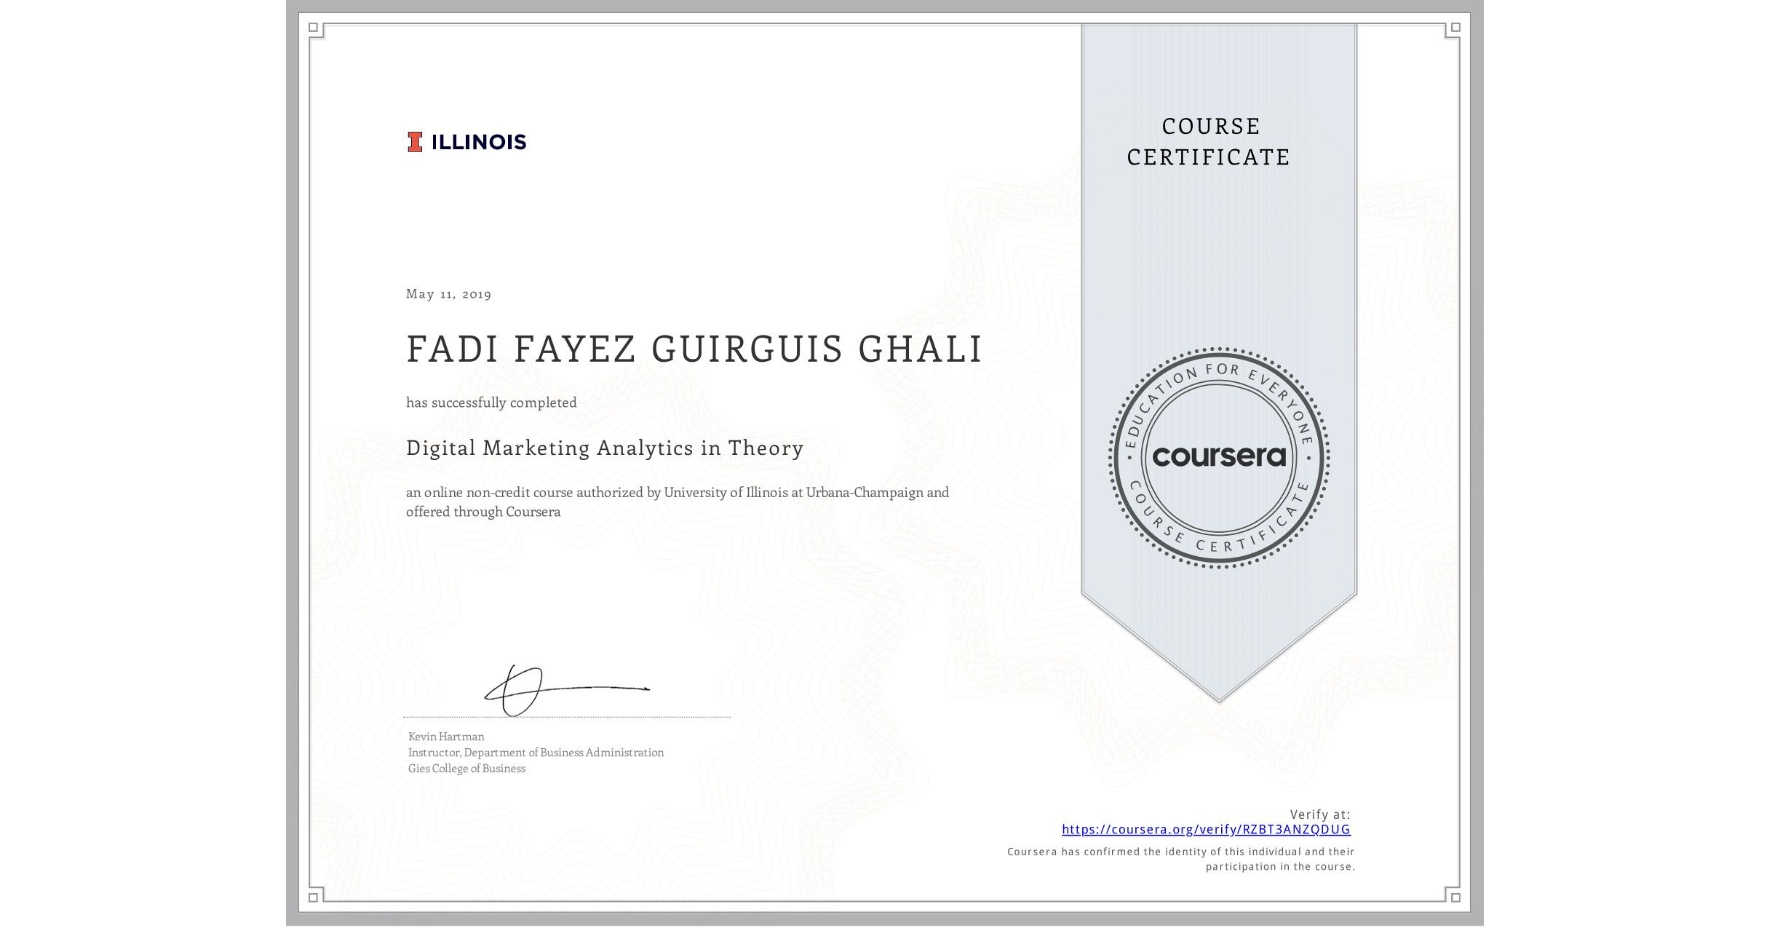 View certificate for FADI FAYEZ GUIRGUIS  GHALI, Digital Marketing Analytics in Theory, an online non-credit course authorized by University of Illinois at Urbana-Champaign and offered through Coursera